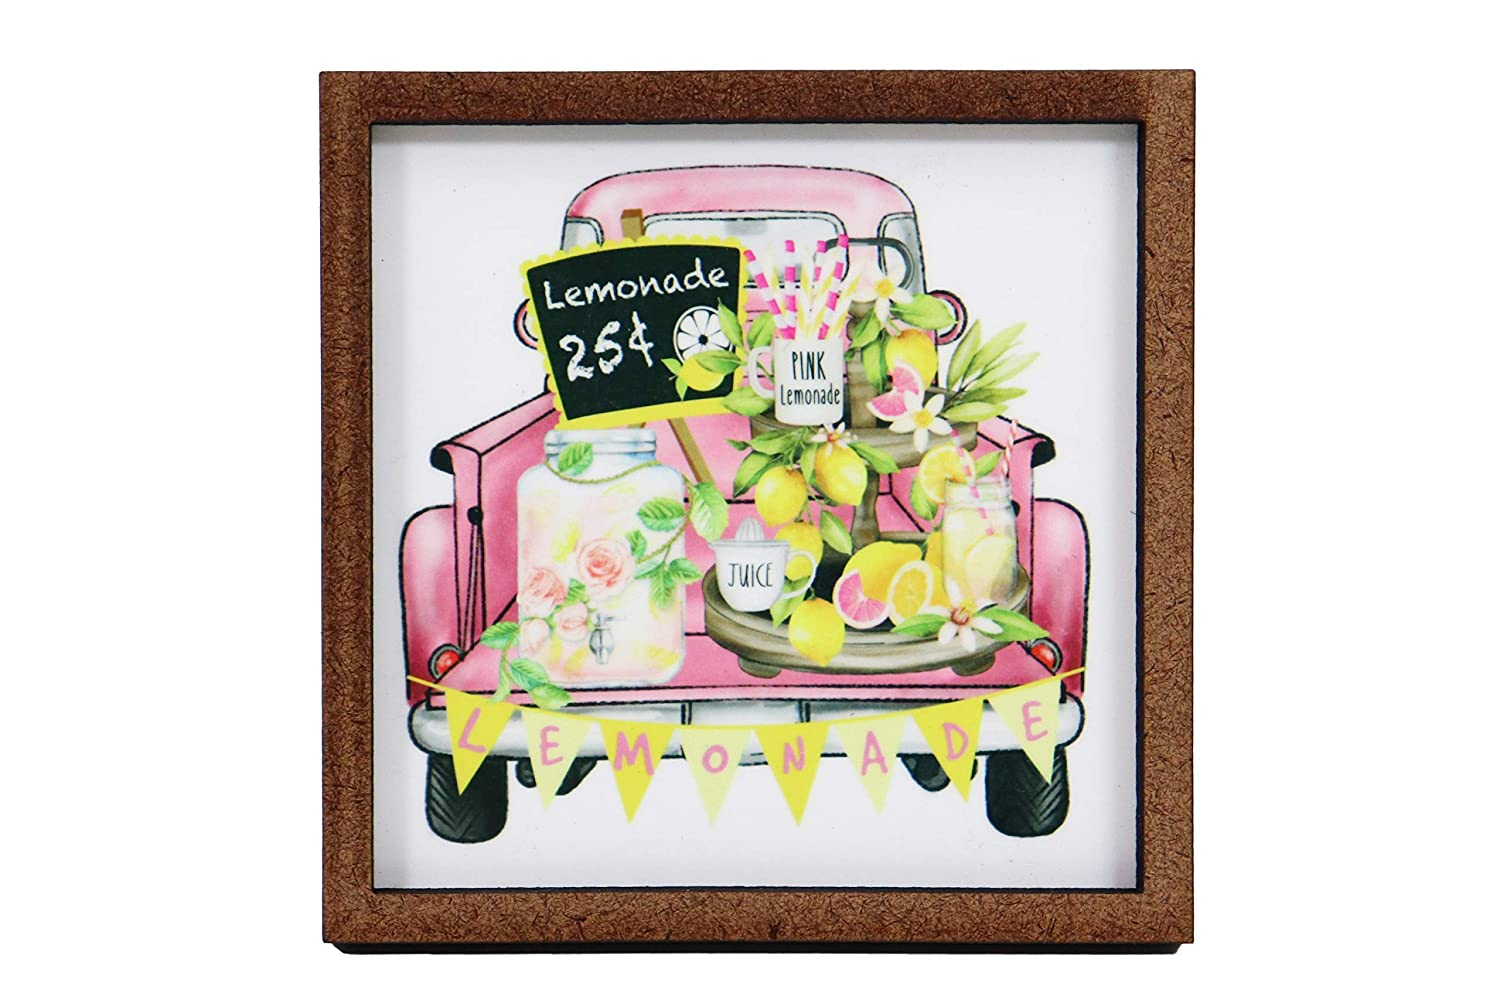 Recommendation Lemonade 25¢ Truck Sign Tray Tier Wooden Sale special price -